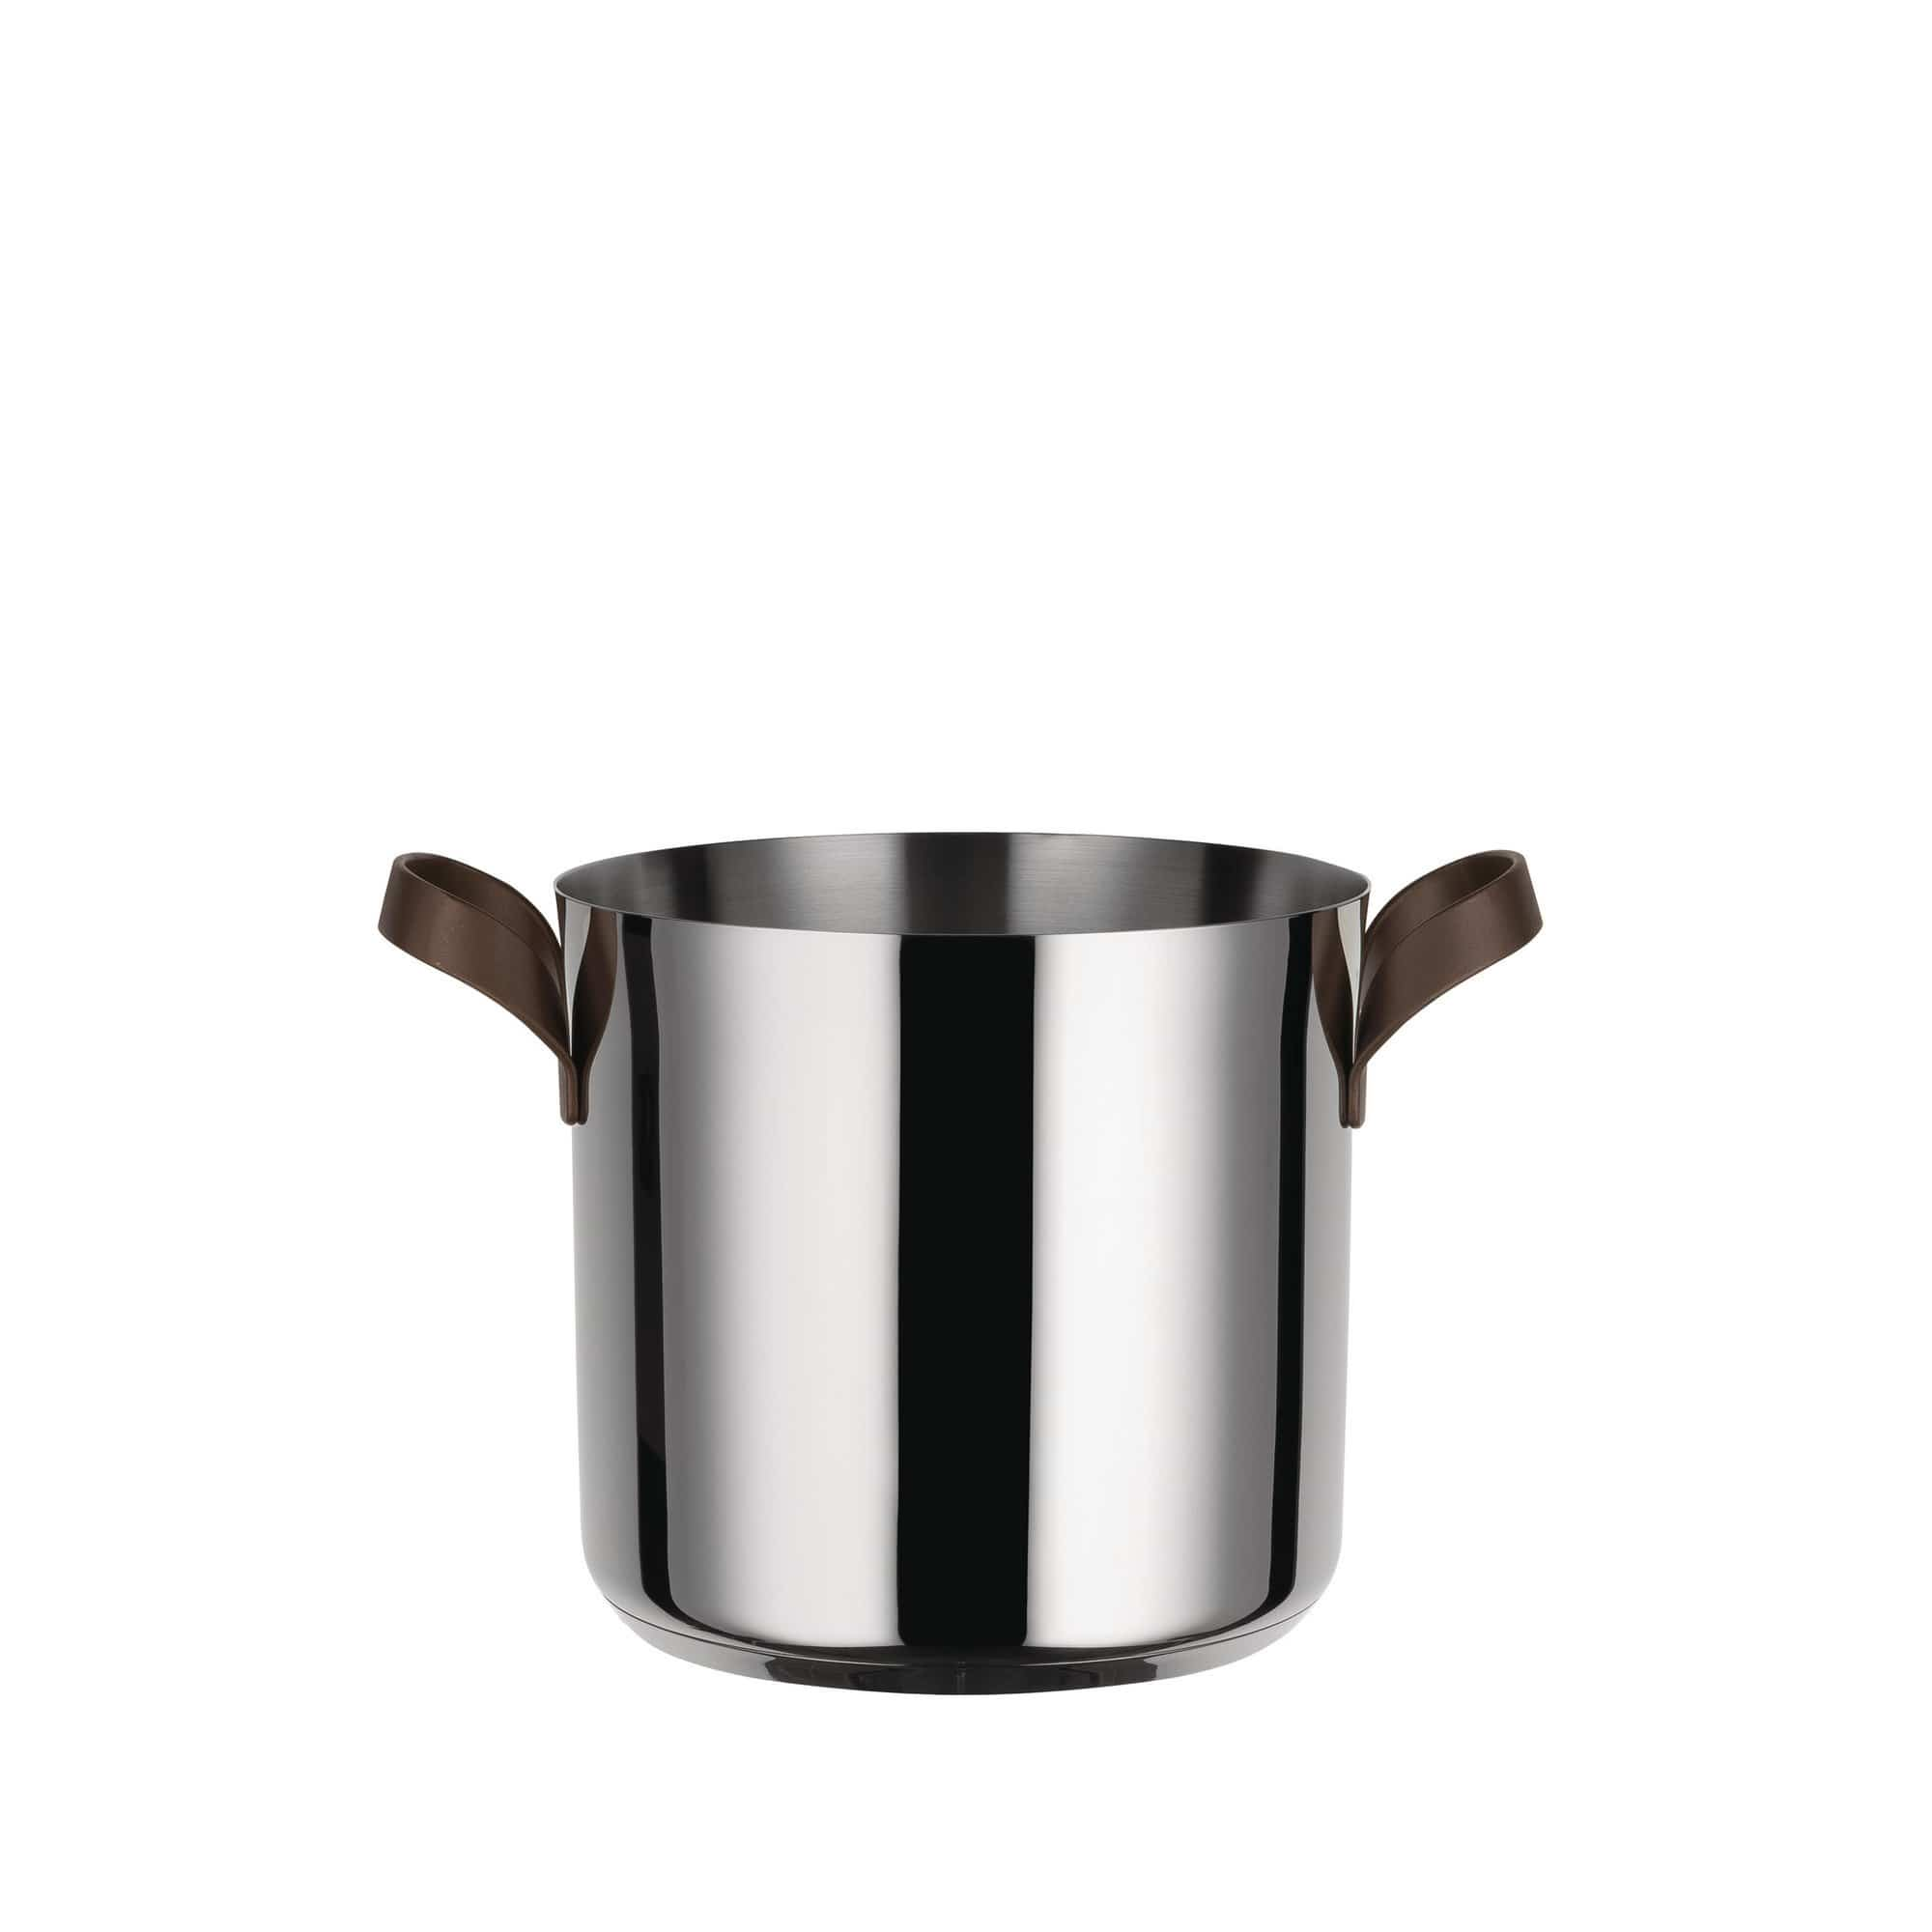 Alessi Alessi Edo Stockpot - Available in 2 Sizes